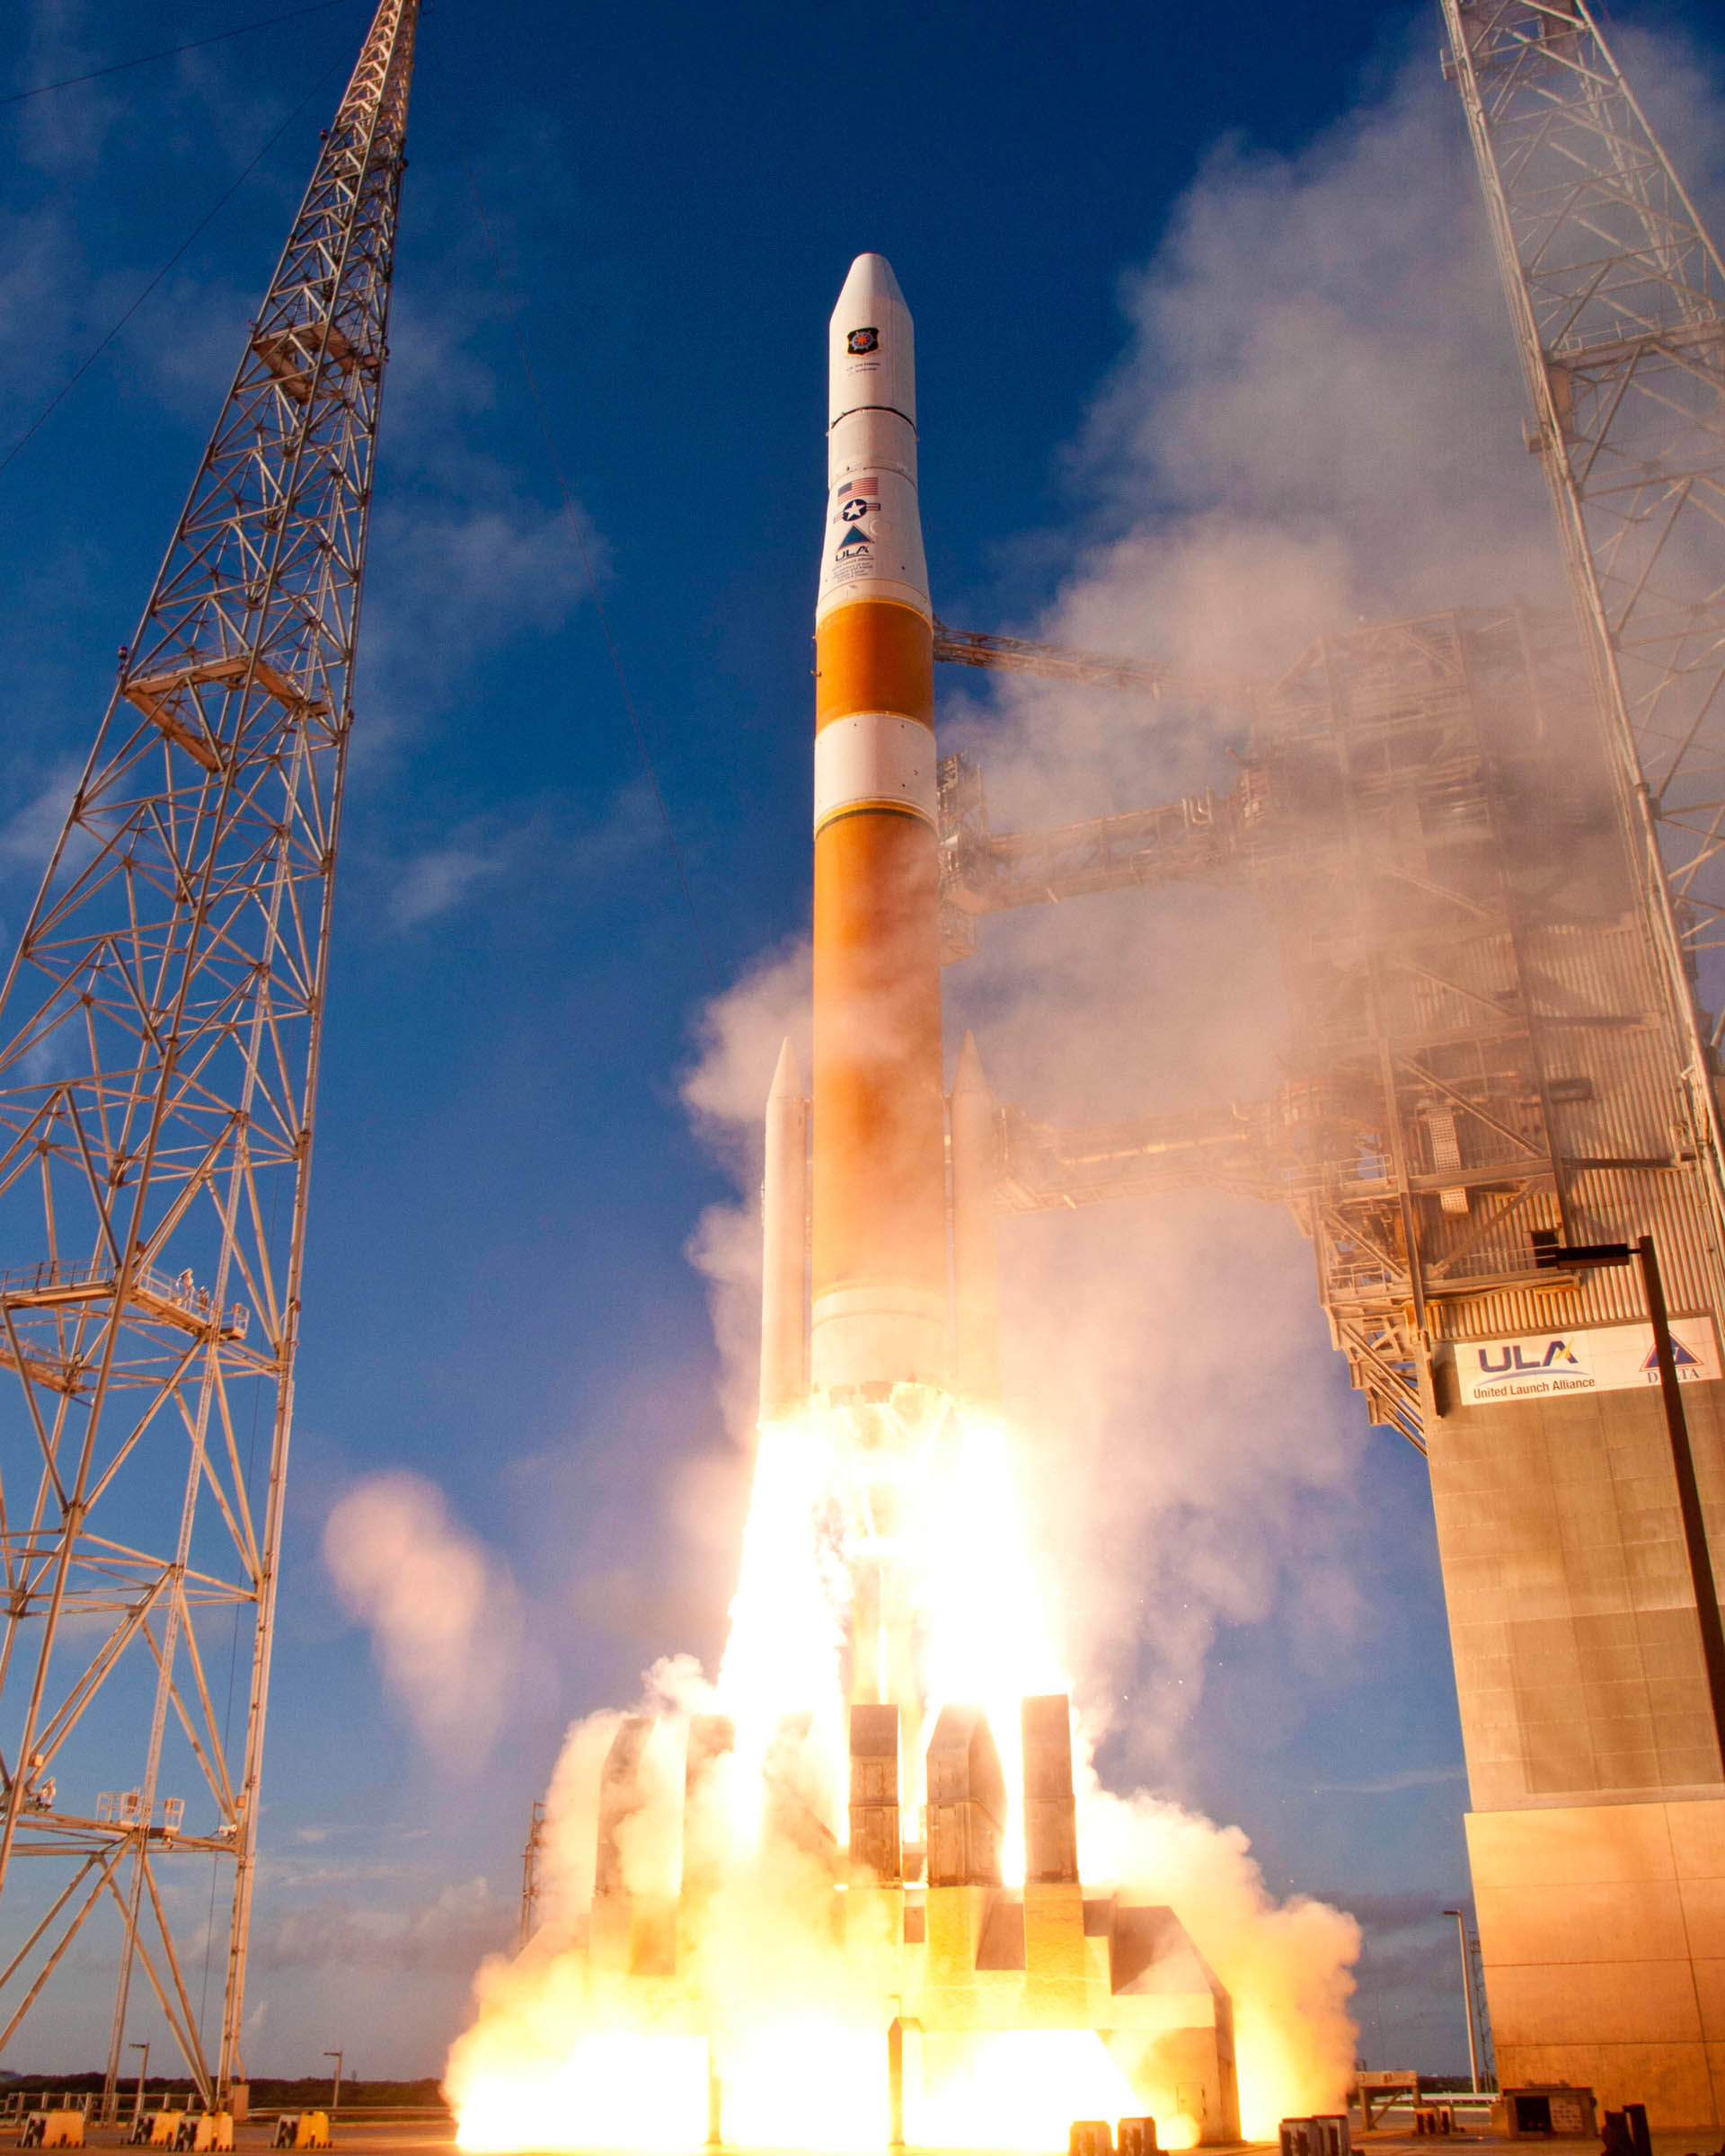 Global Positioning System IIF-3 Satellite Launch